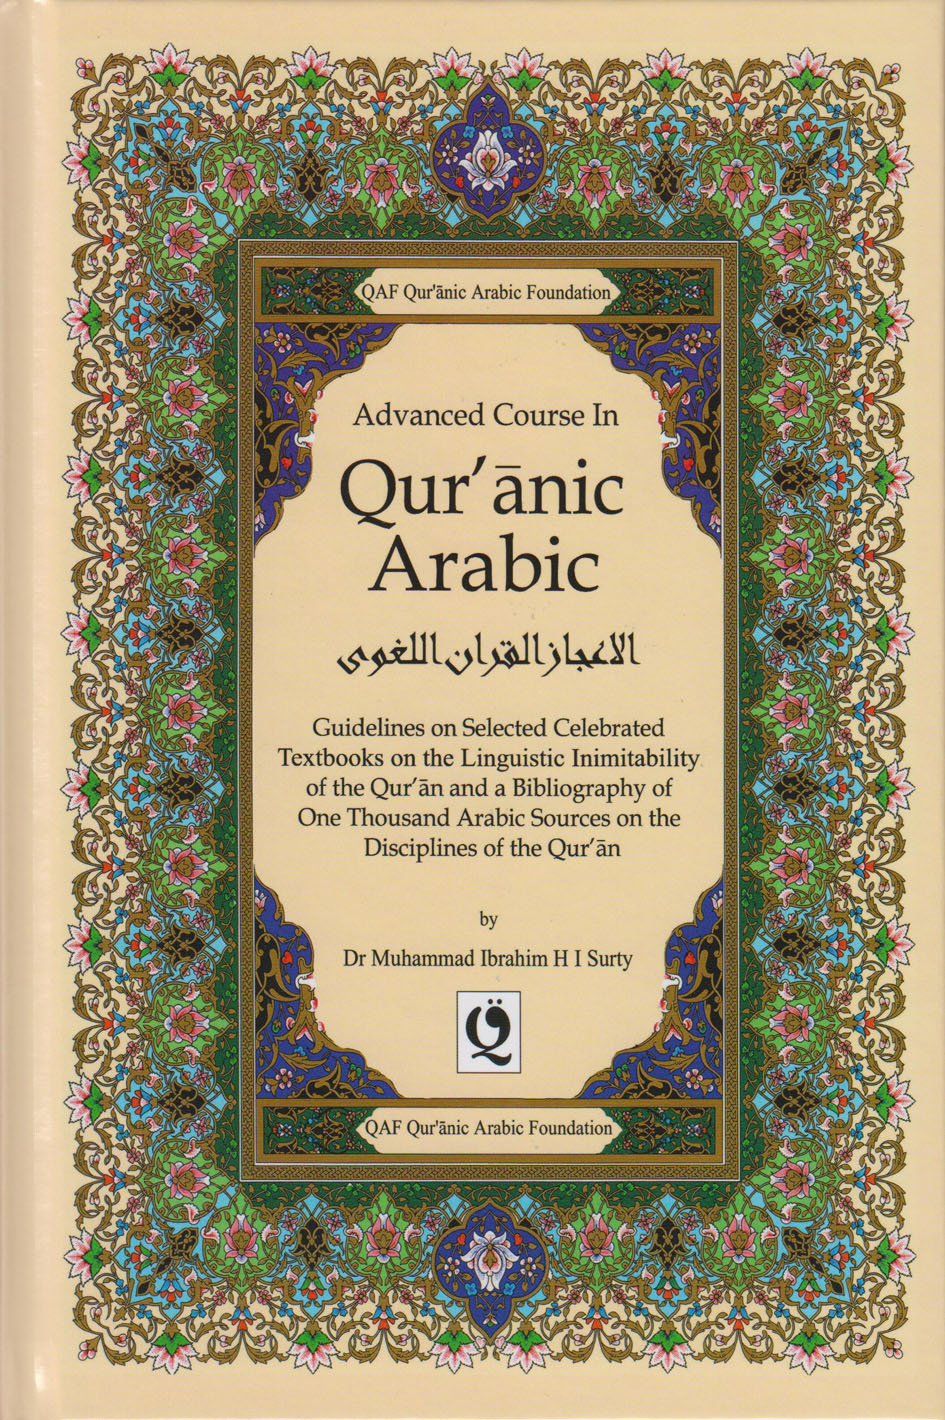 Advanced Course in Qur'anic Arabic